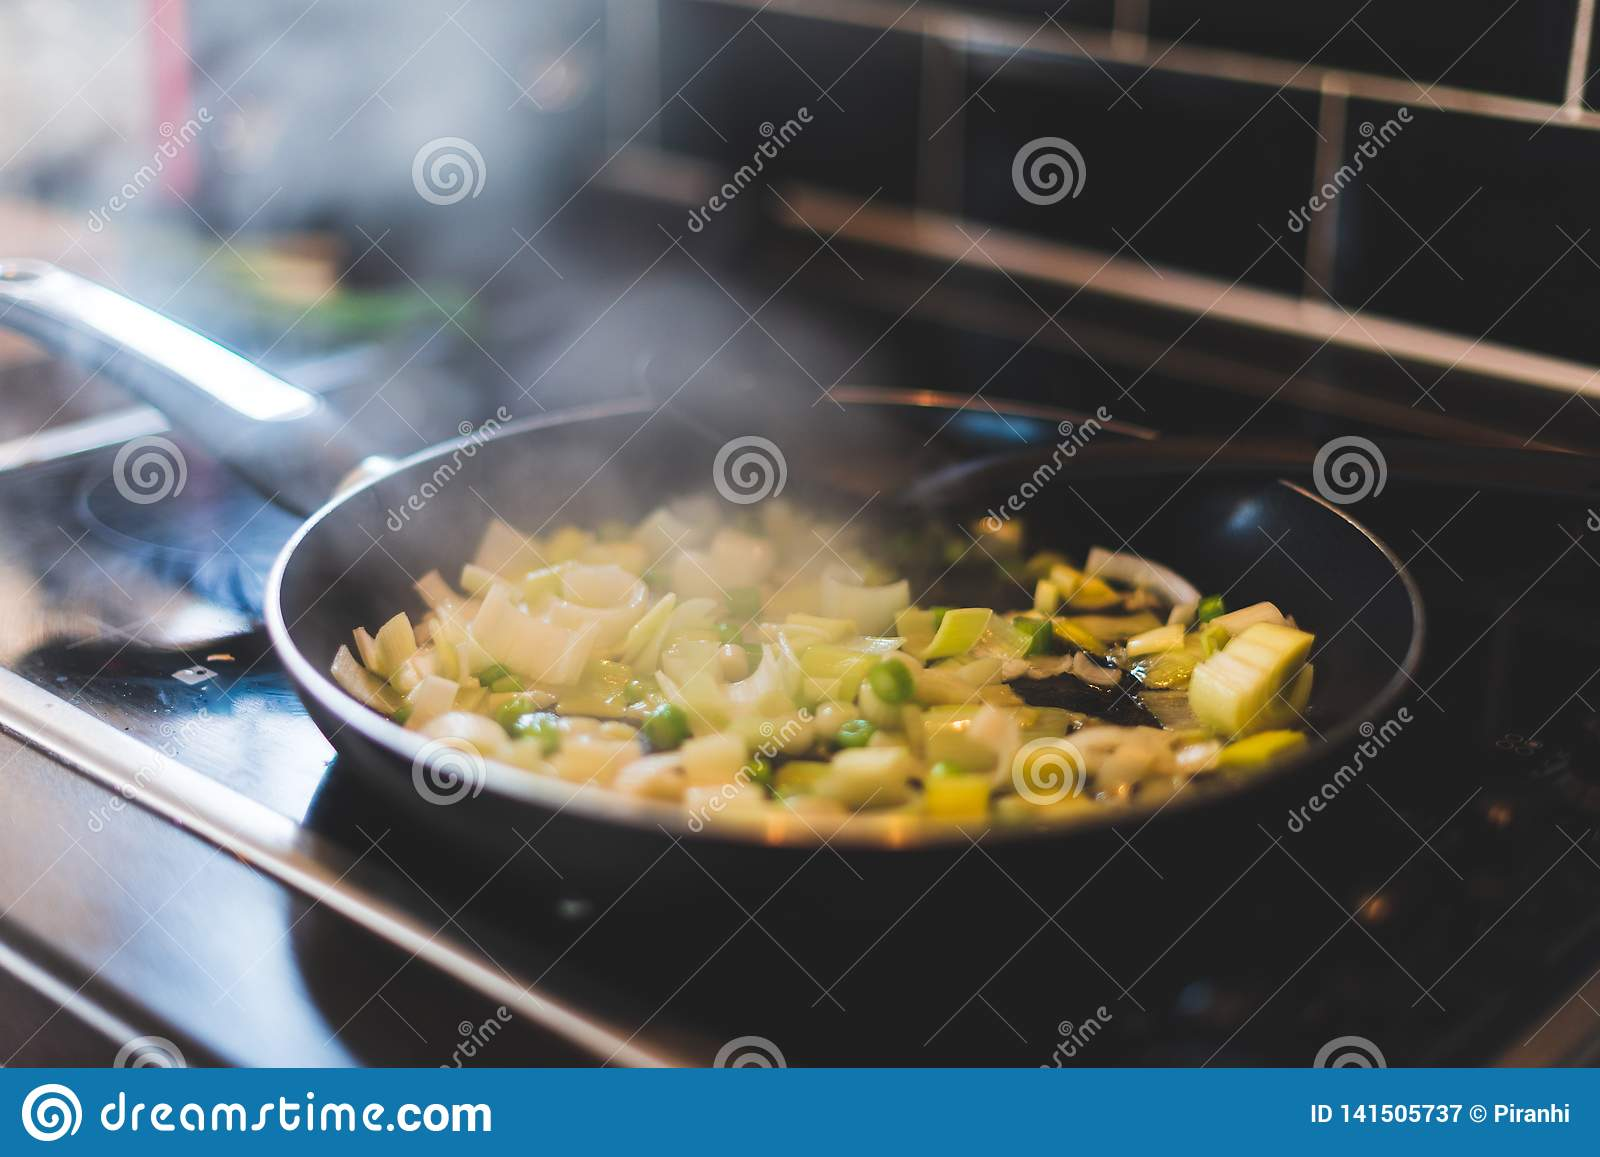 Leeks and other vegetables are being cooked in a frying pan